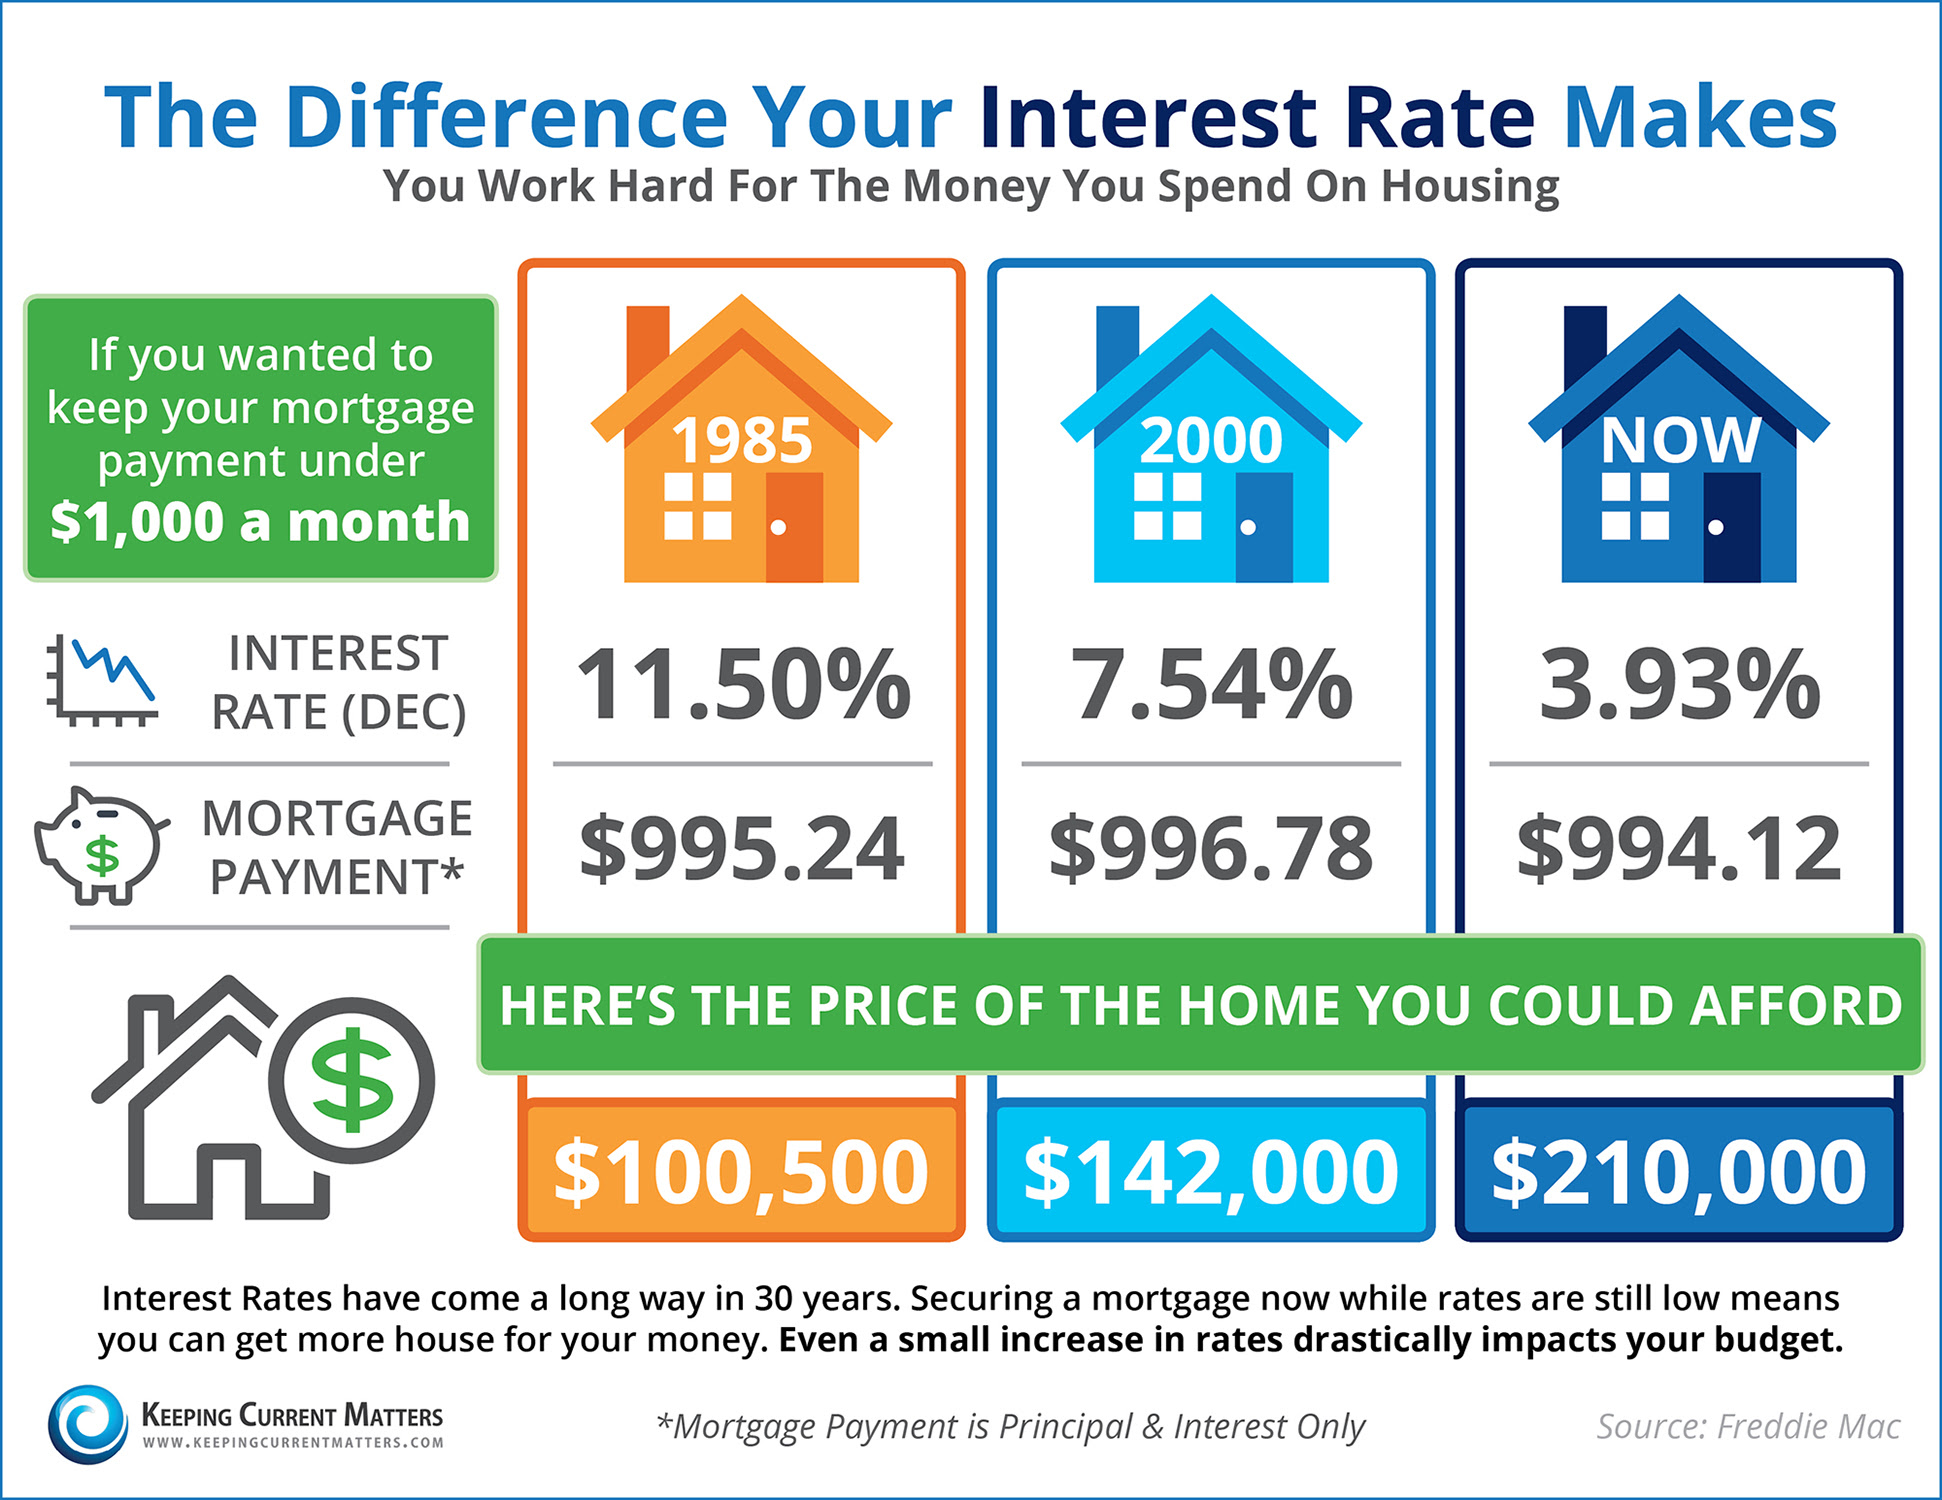 interest-rate-differences 2